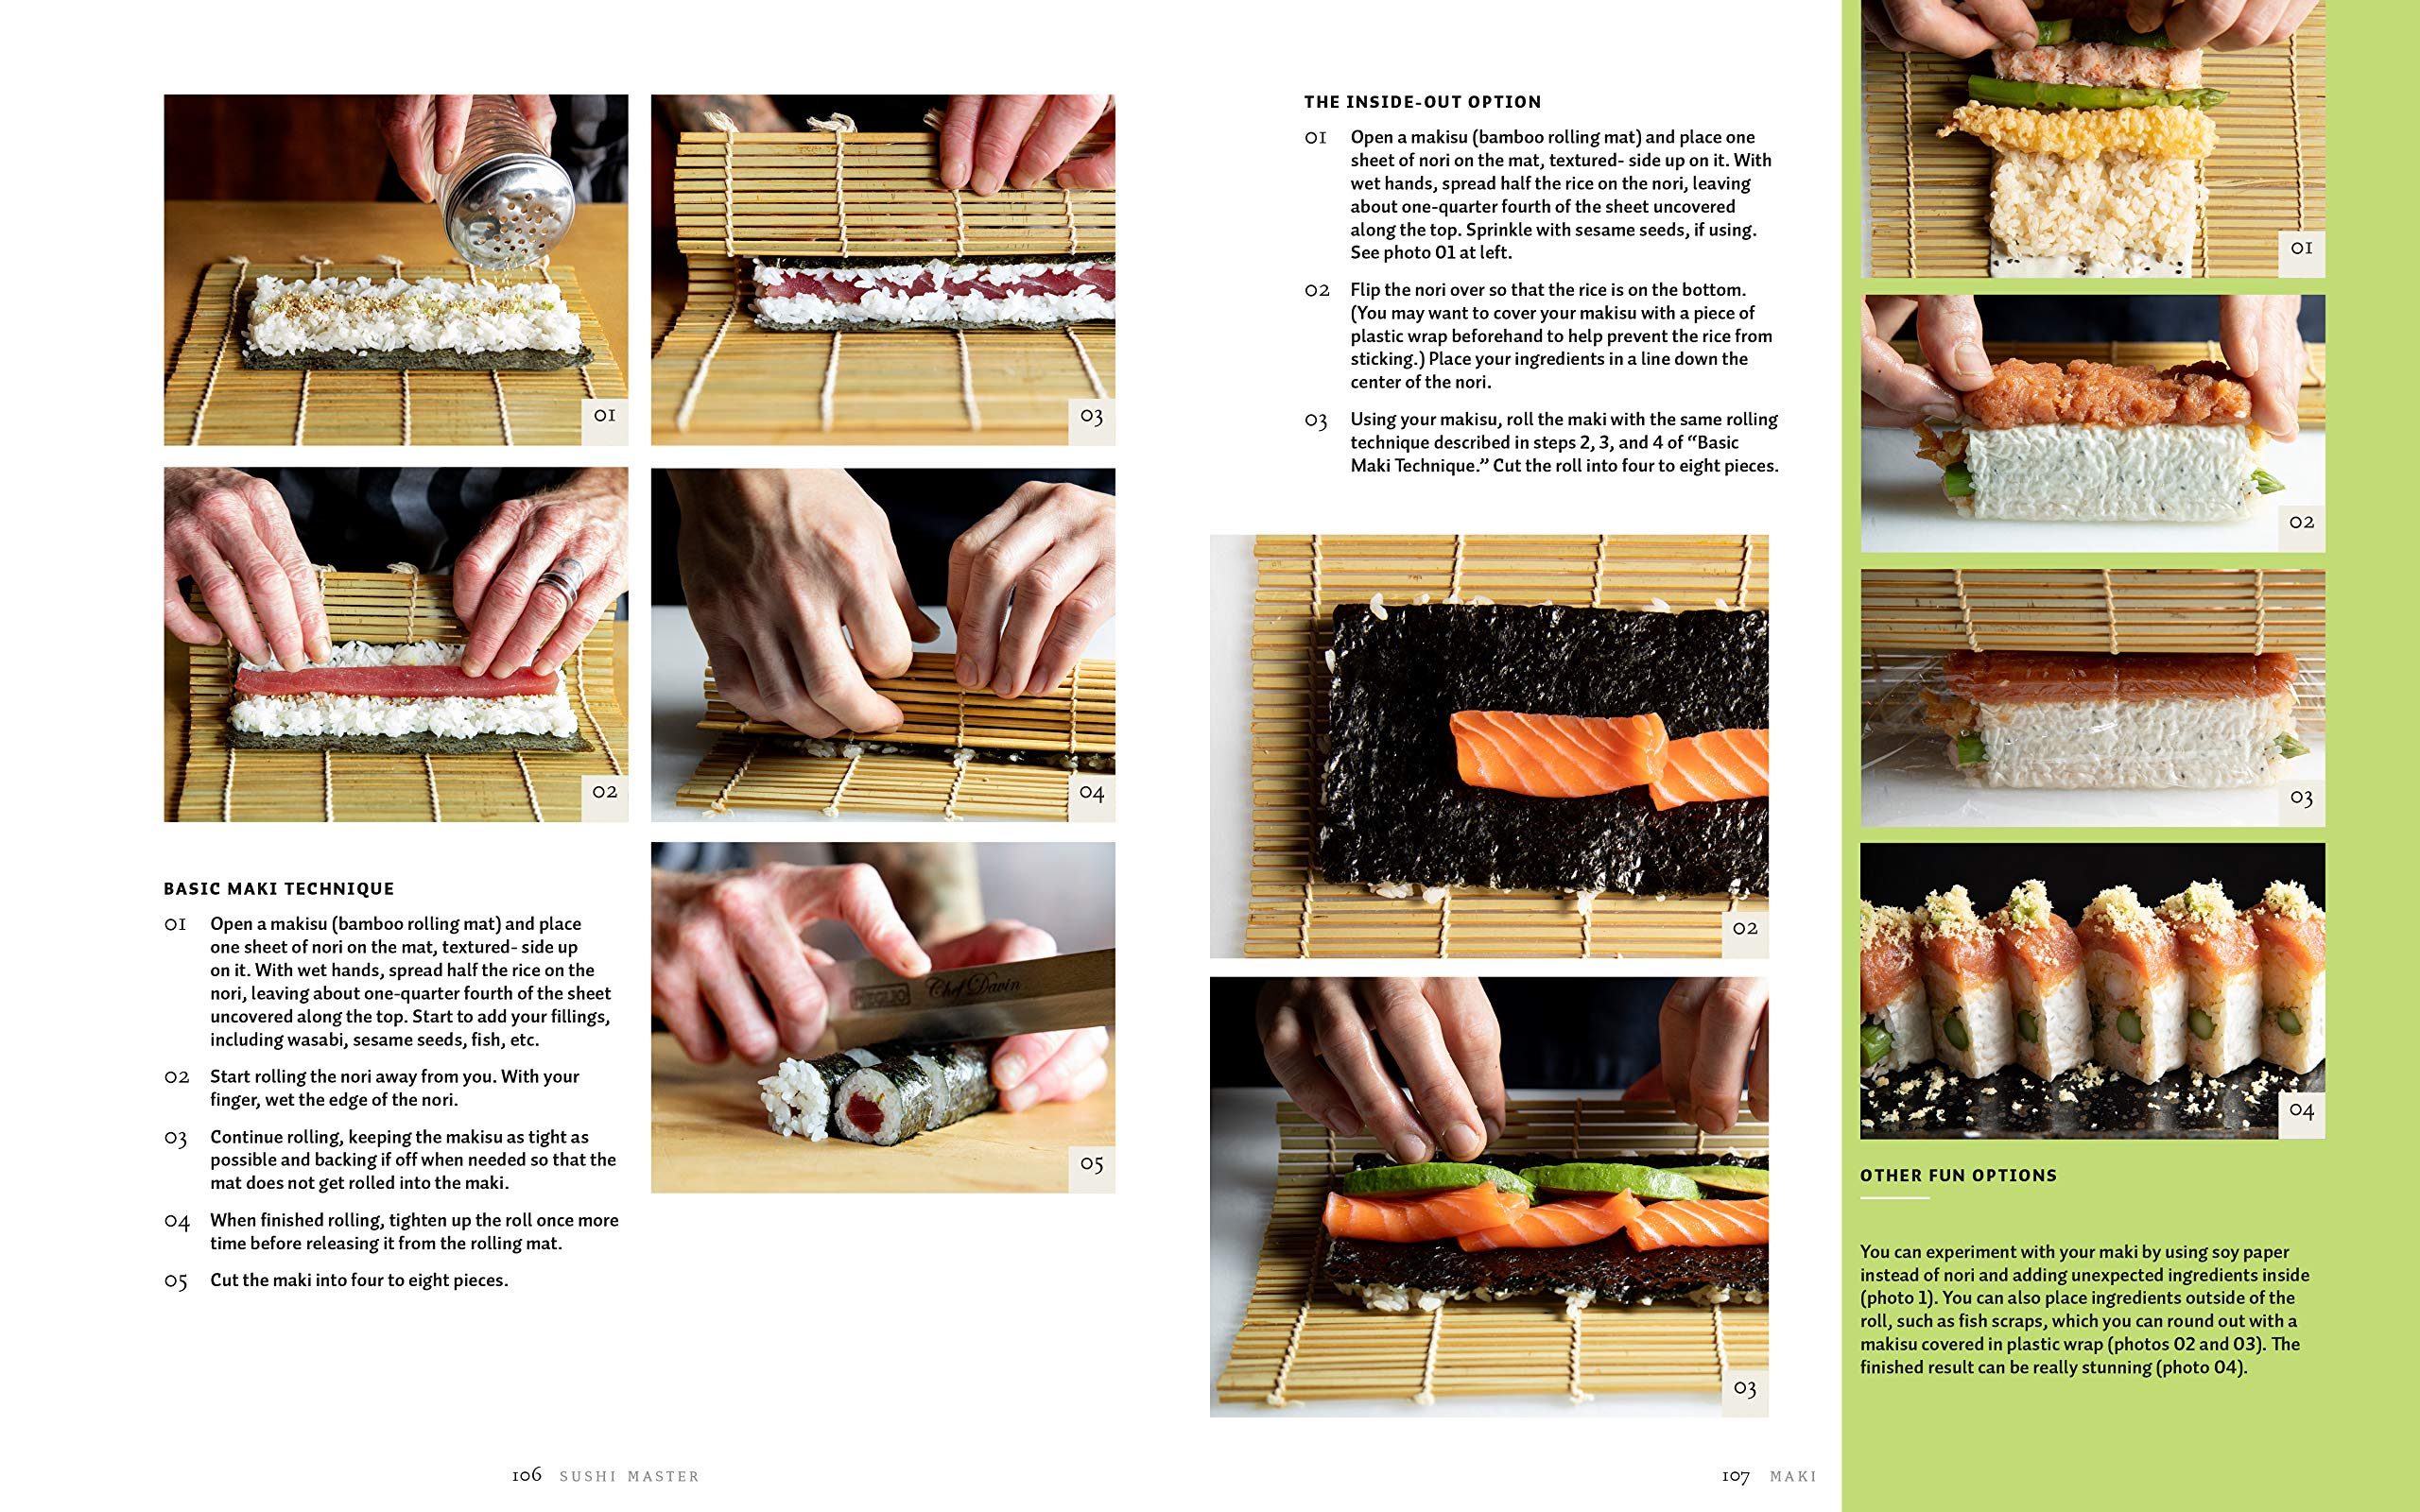 making and enjoying sushi at home Sushi Master An expert guide to sourcing